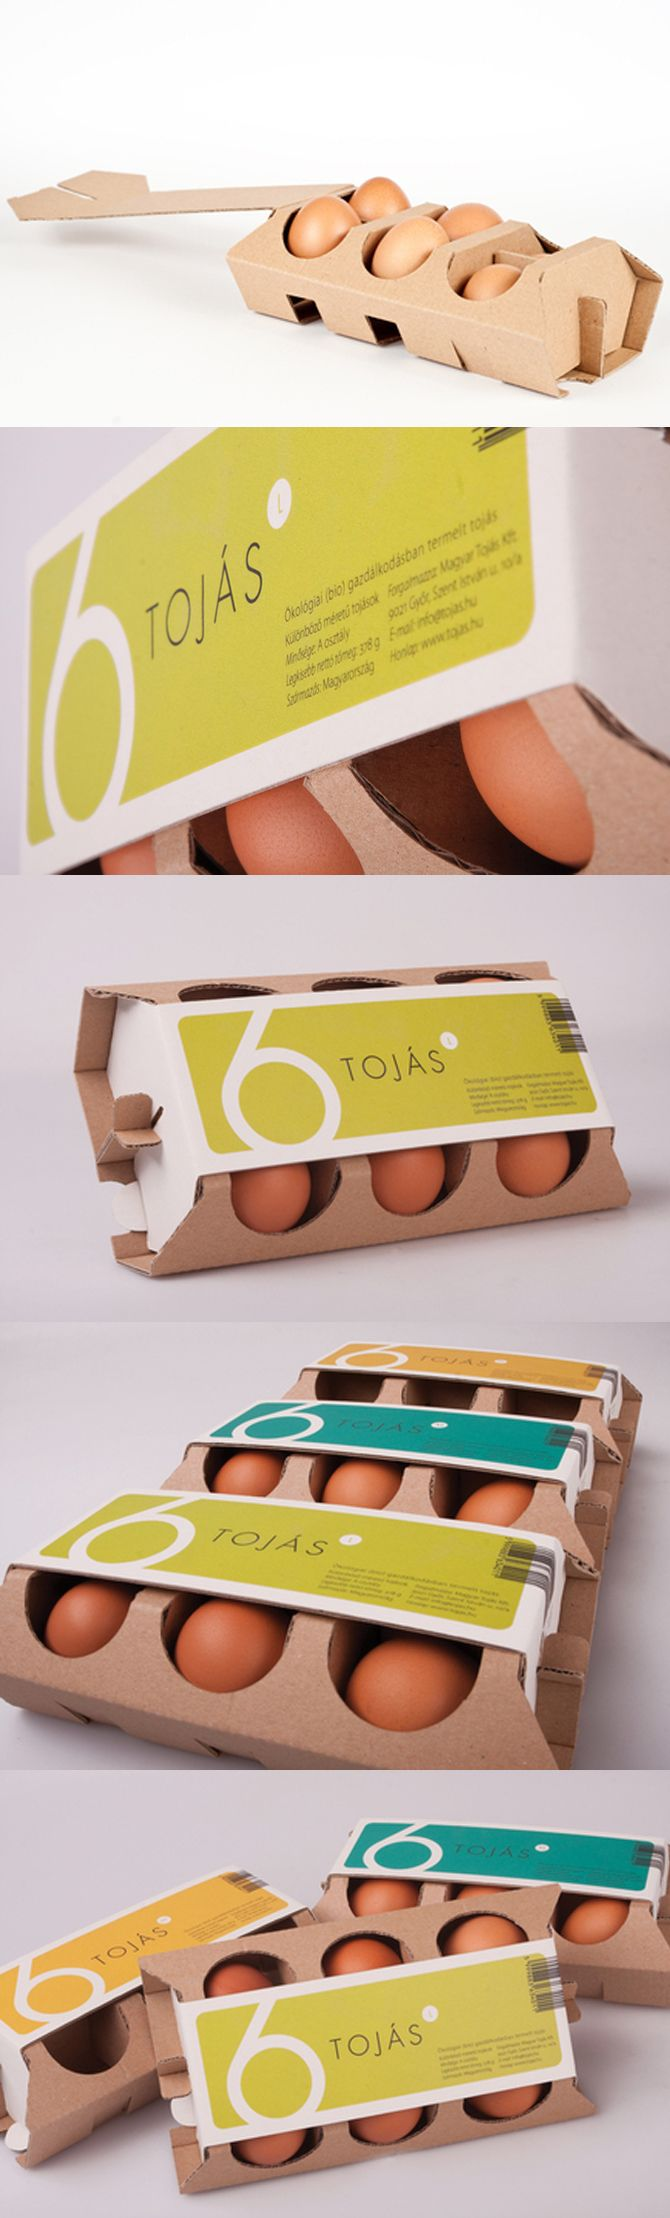 What Came First? The Chicken, The Egg Or The Packaging?   We Design Packaging.